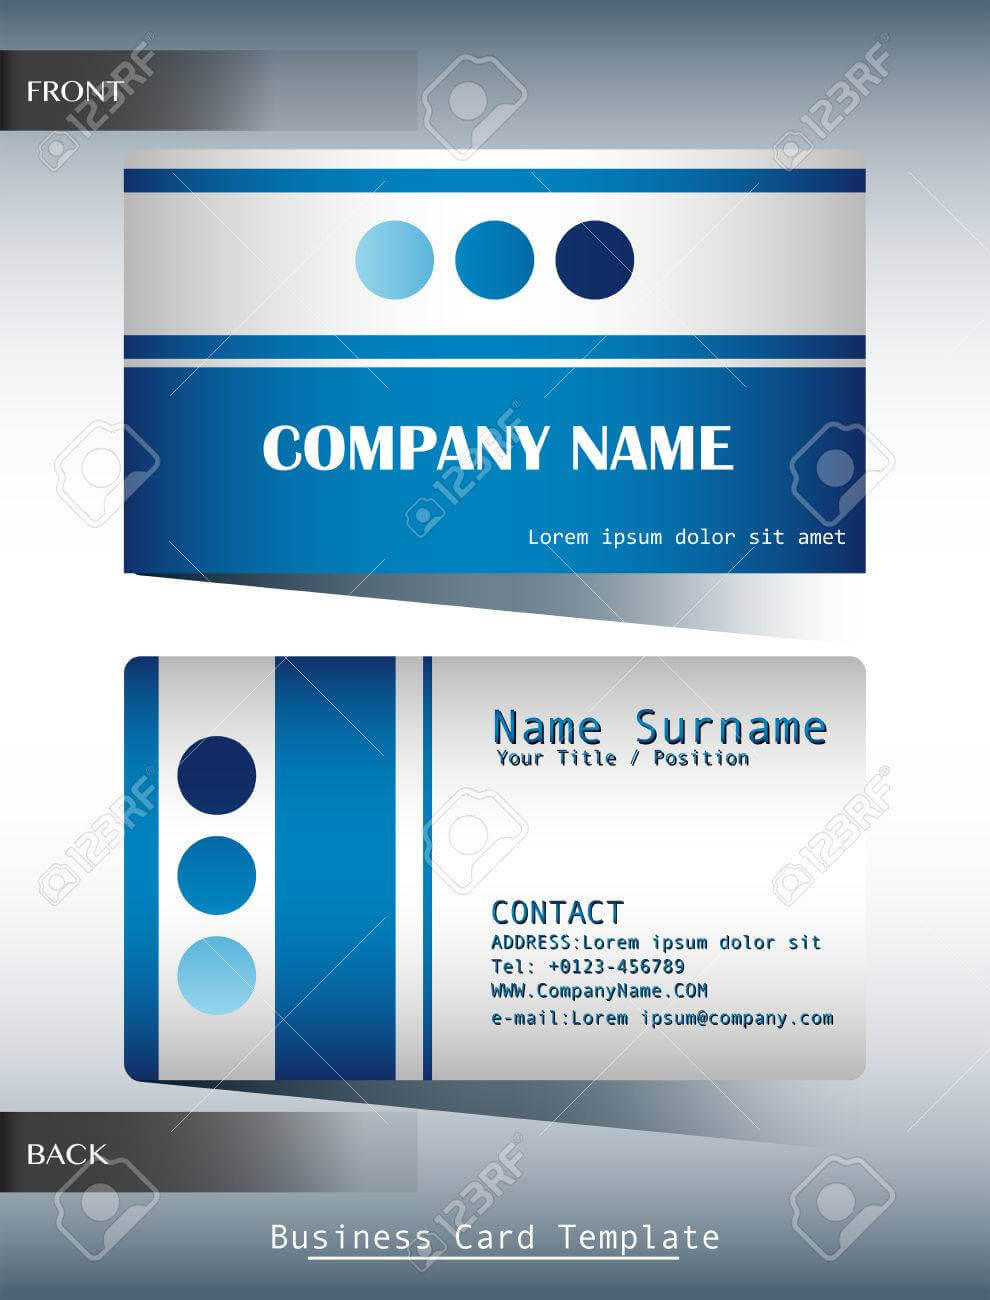 A Blue And Grey Calling Card Template Throughout Template For Calling Card